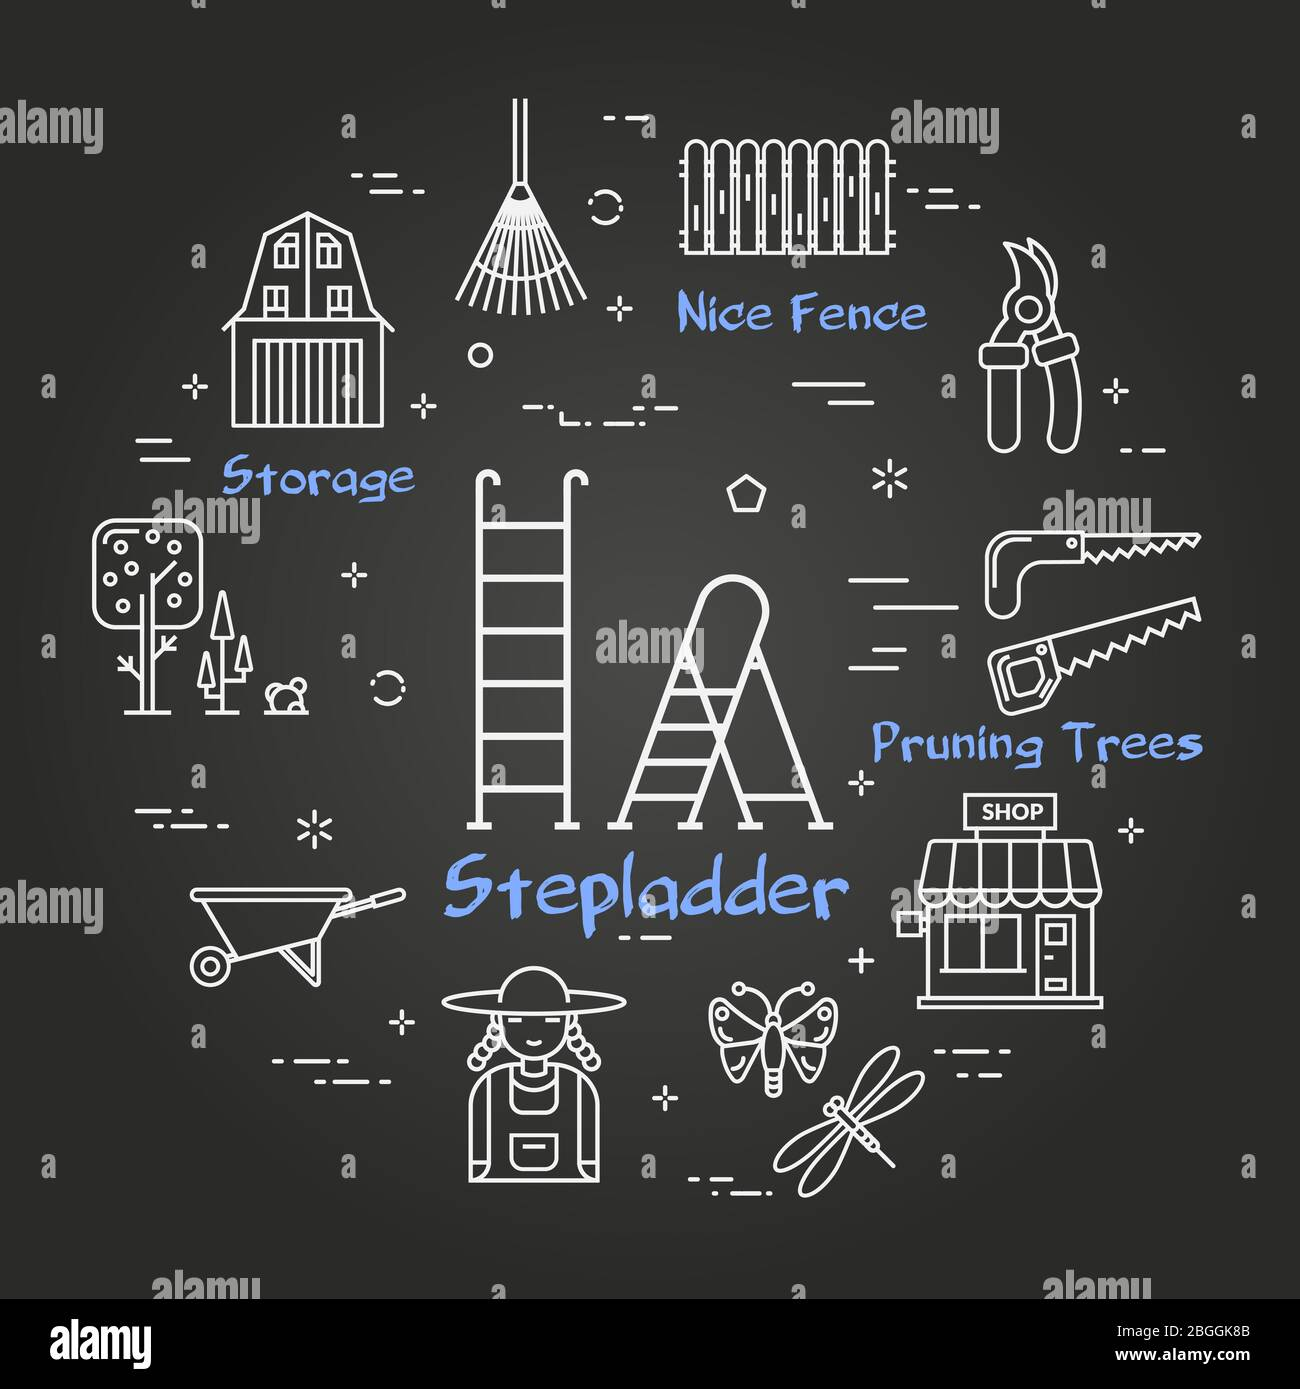 Vector linear black gardening and farming - Stepladder Stock Vector